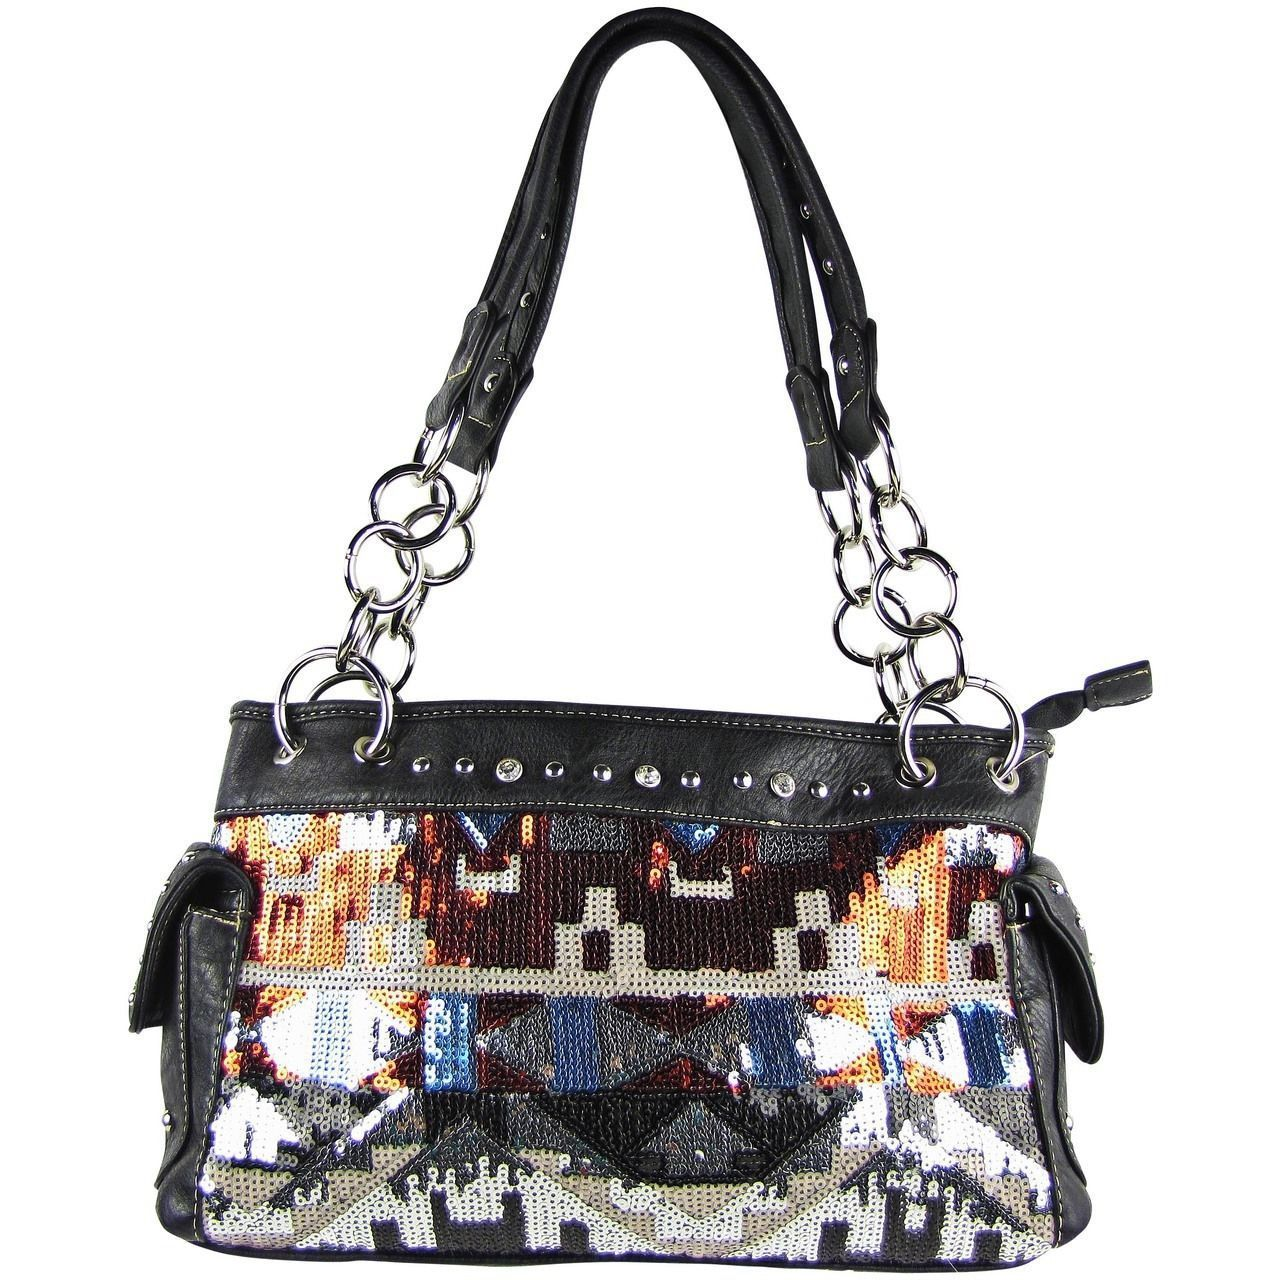 202eab4bc0 Black sequence tribal stitched shoulder handbag concealed carry western  purse jpg 1280x1280 Concealed carry handbags wholesale